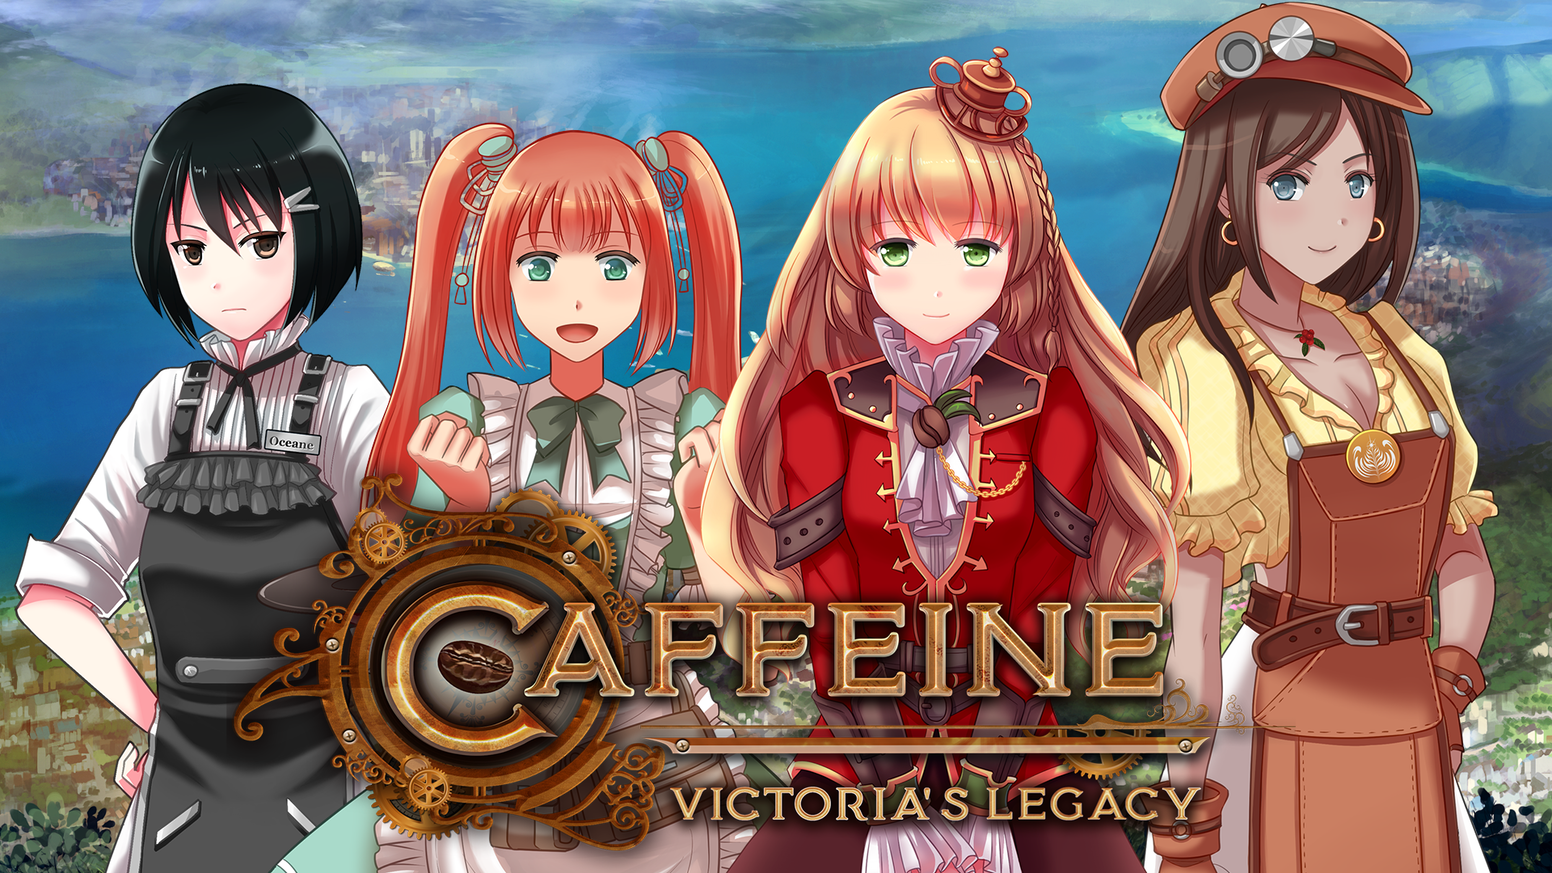 A visual novel about coffee and magic set in a steampunk anime world. Featuring your favorite flat white and cappuccinos!